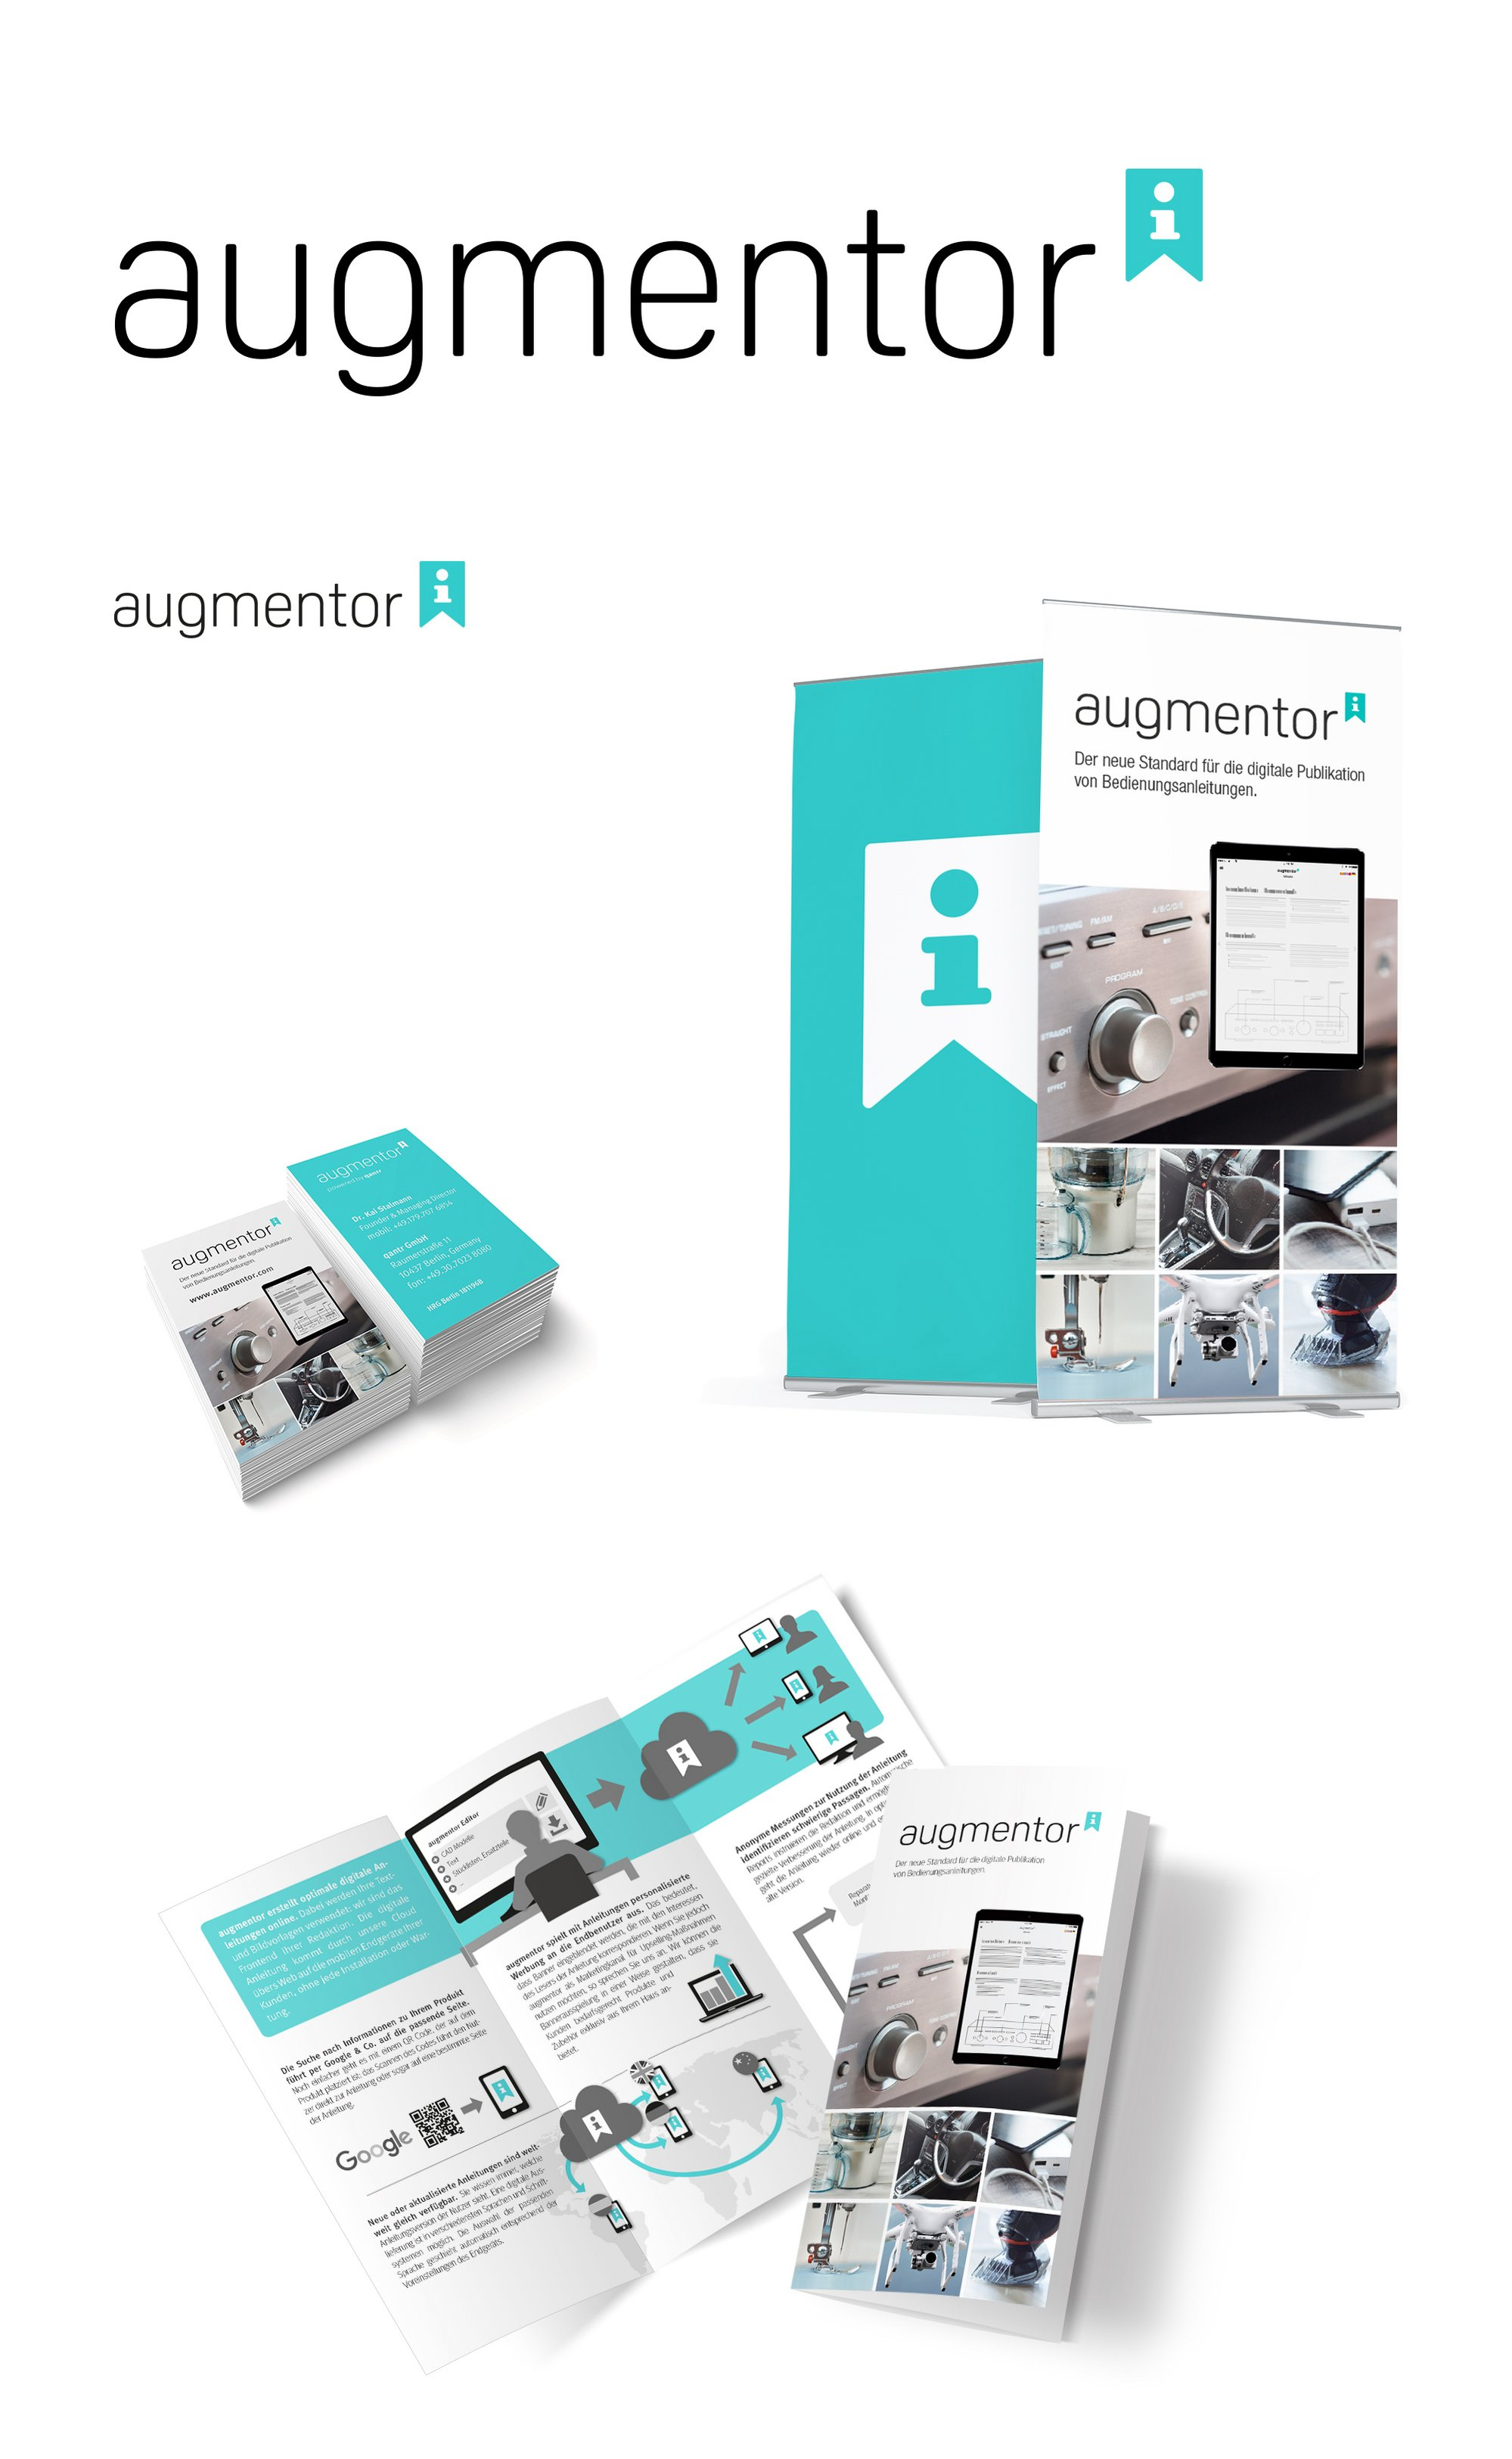 augmentor Berlin | Corporate Identity incl. Logodesign, Flyer und Visitenkarte